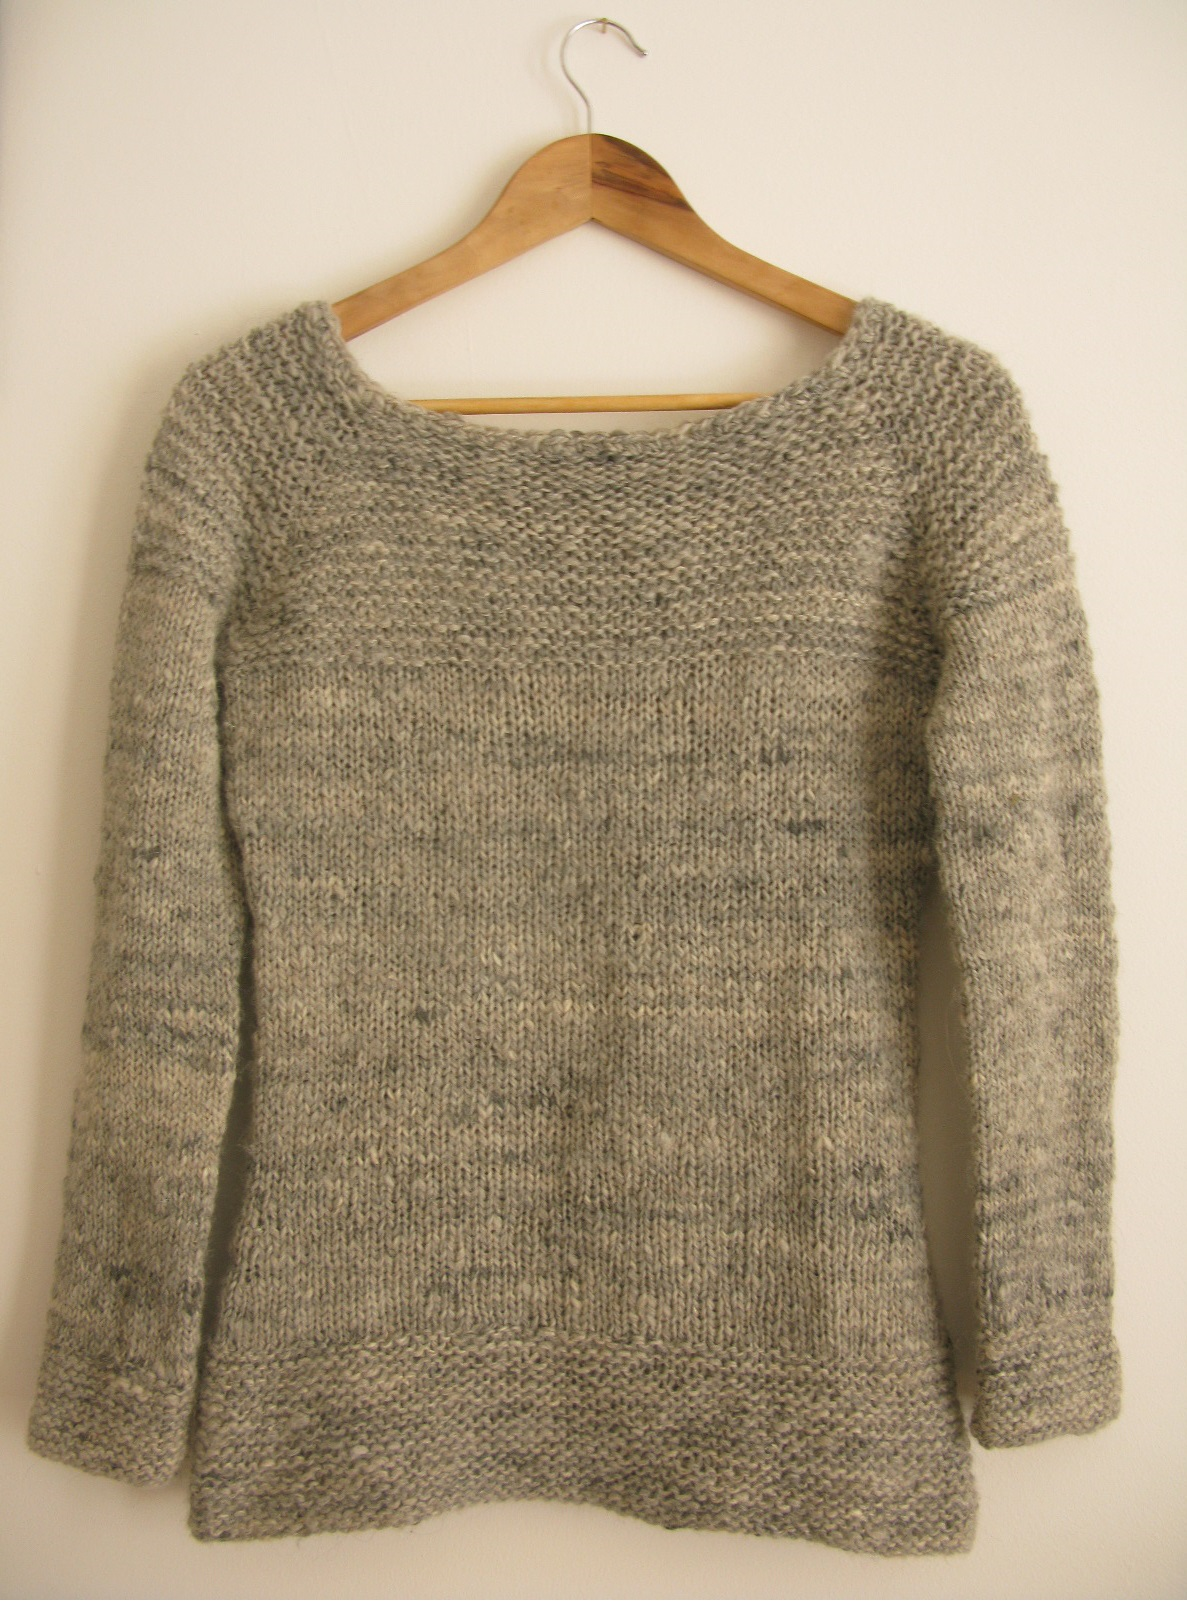 Free Knitting Pattern Azel Pullover : MenS Top Down Sweater Pattern Knit - Gray Cardigan Sweater